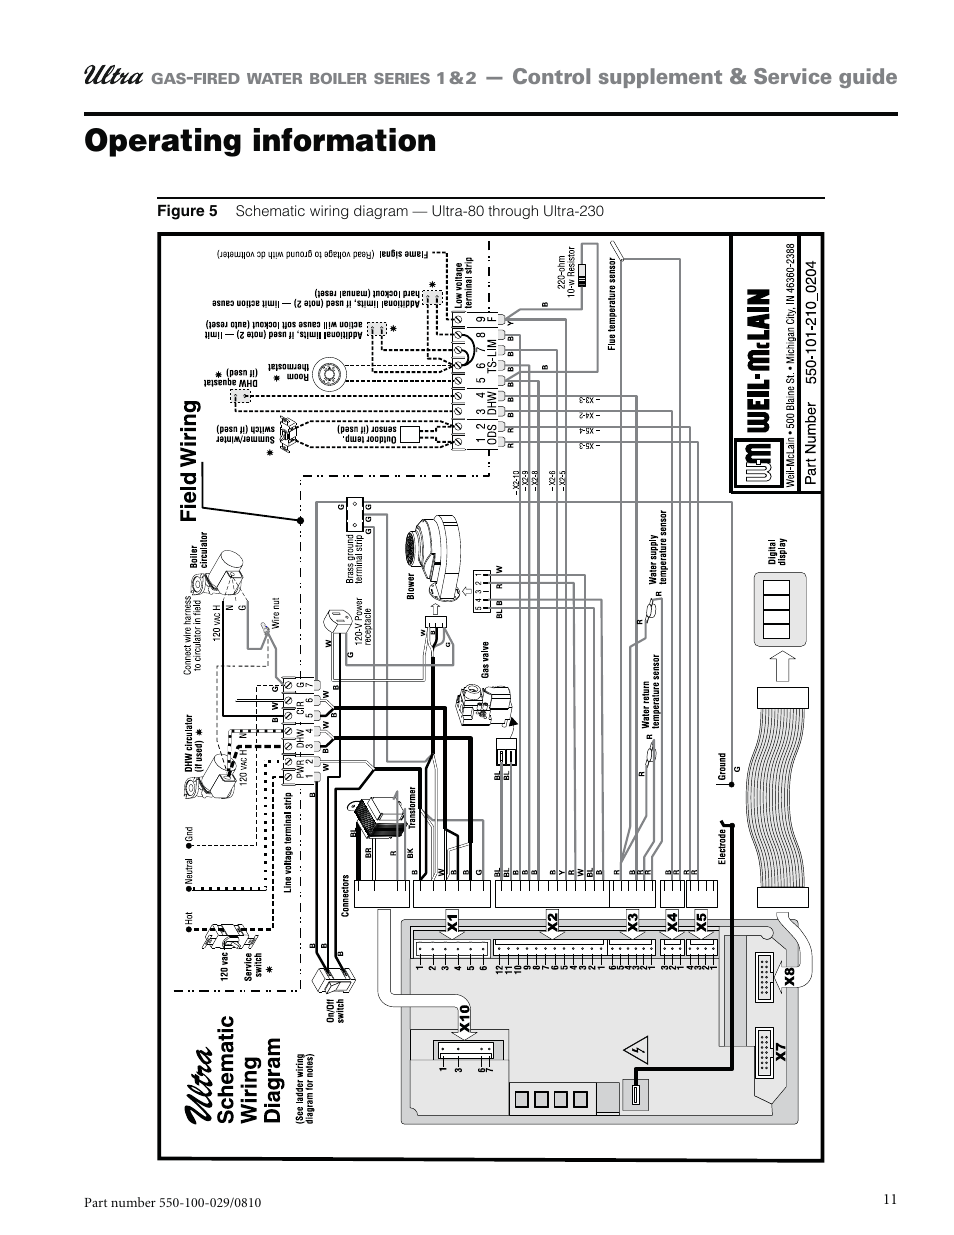 medium resolution of operating information weil mclain ultra 230 user manual page 11 60weil mclain wiring diagram 5